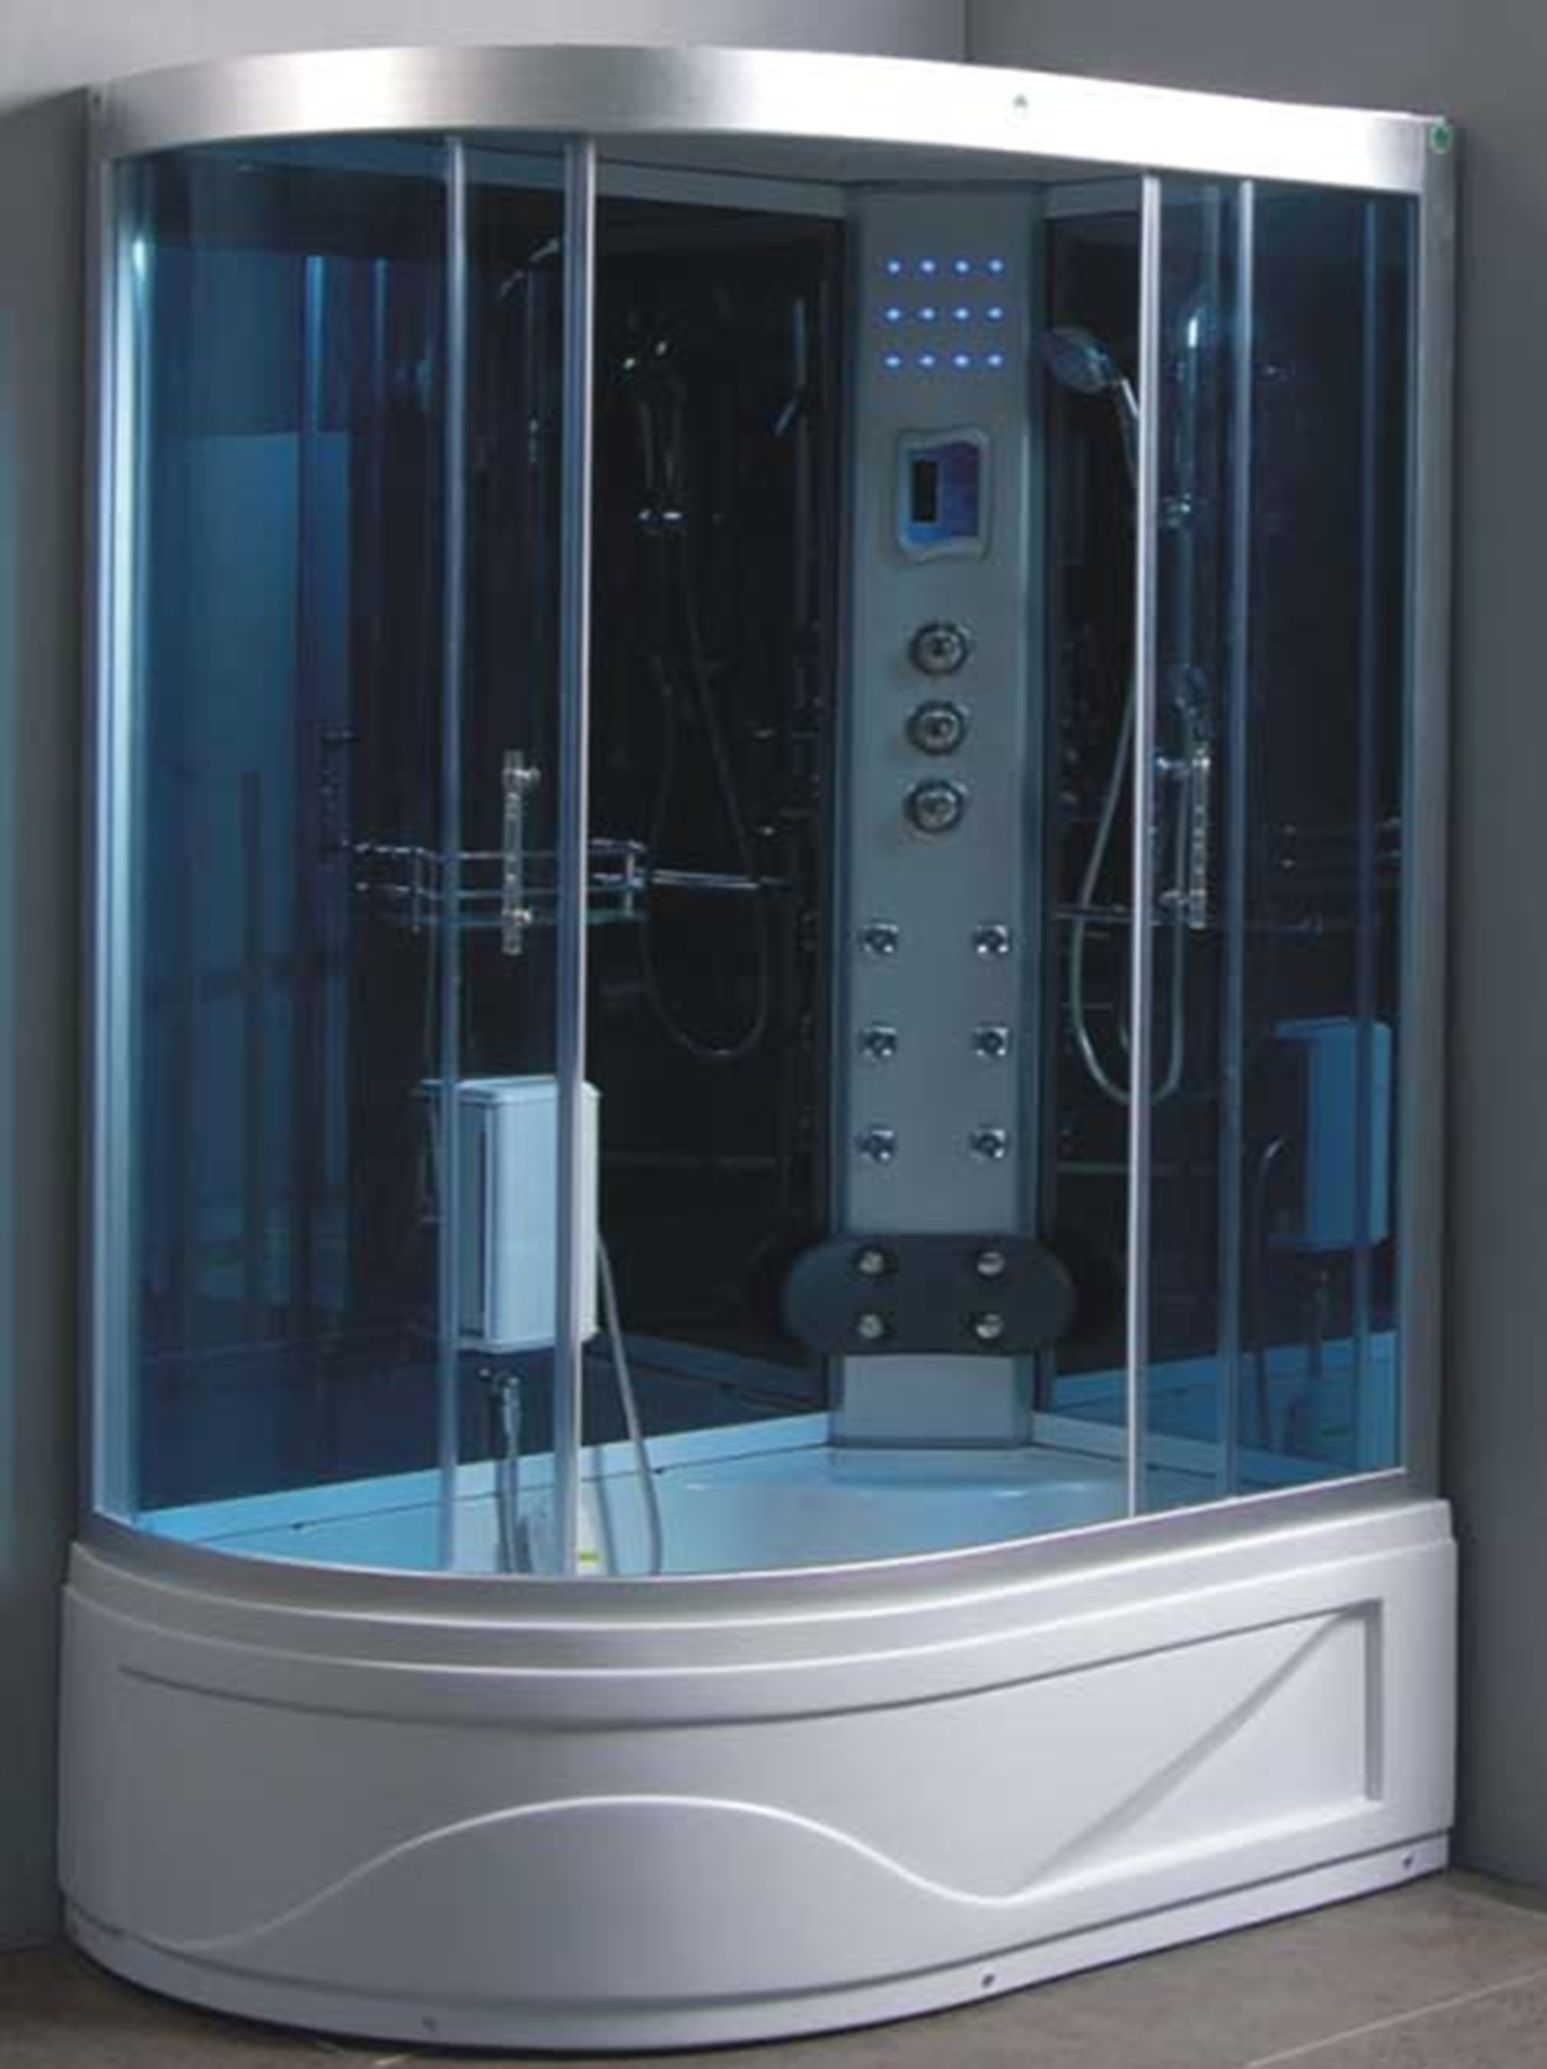 Steam Shower Room With deep Tub L90S02 $1359.00 Dimensions: 52in ...